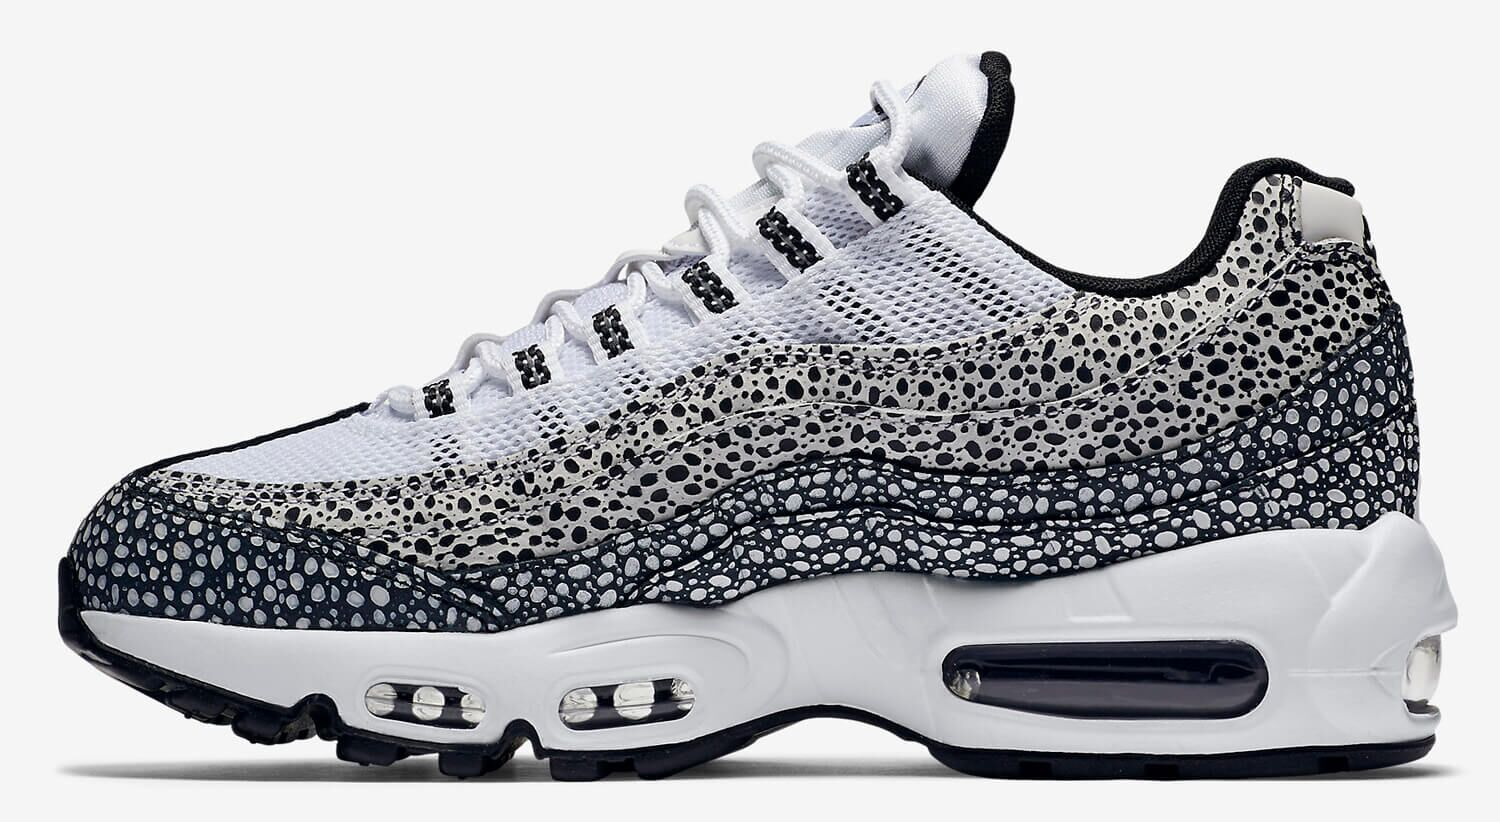 Air Max 95 Safari Nike Kd 5 Christmas Shoes | Professional Standards ...